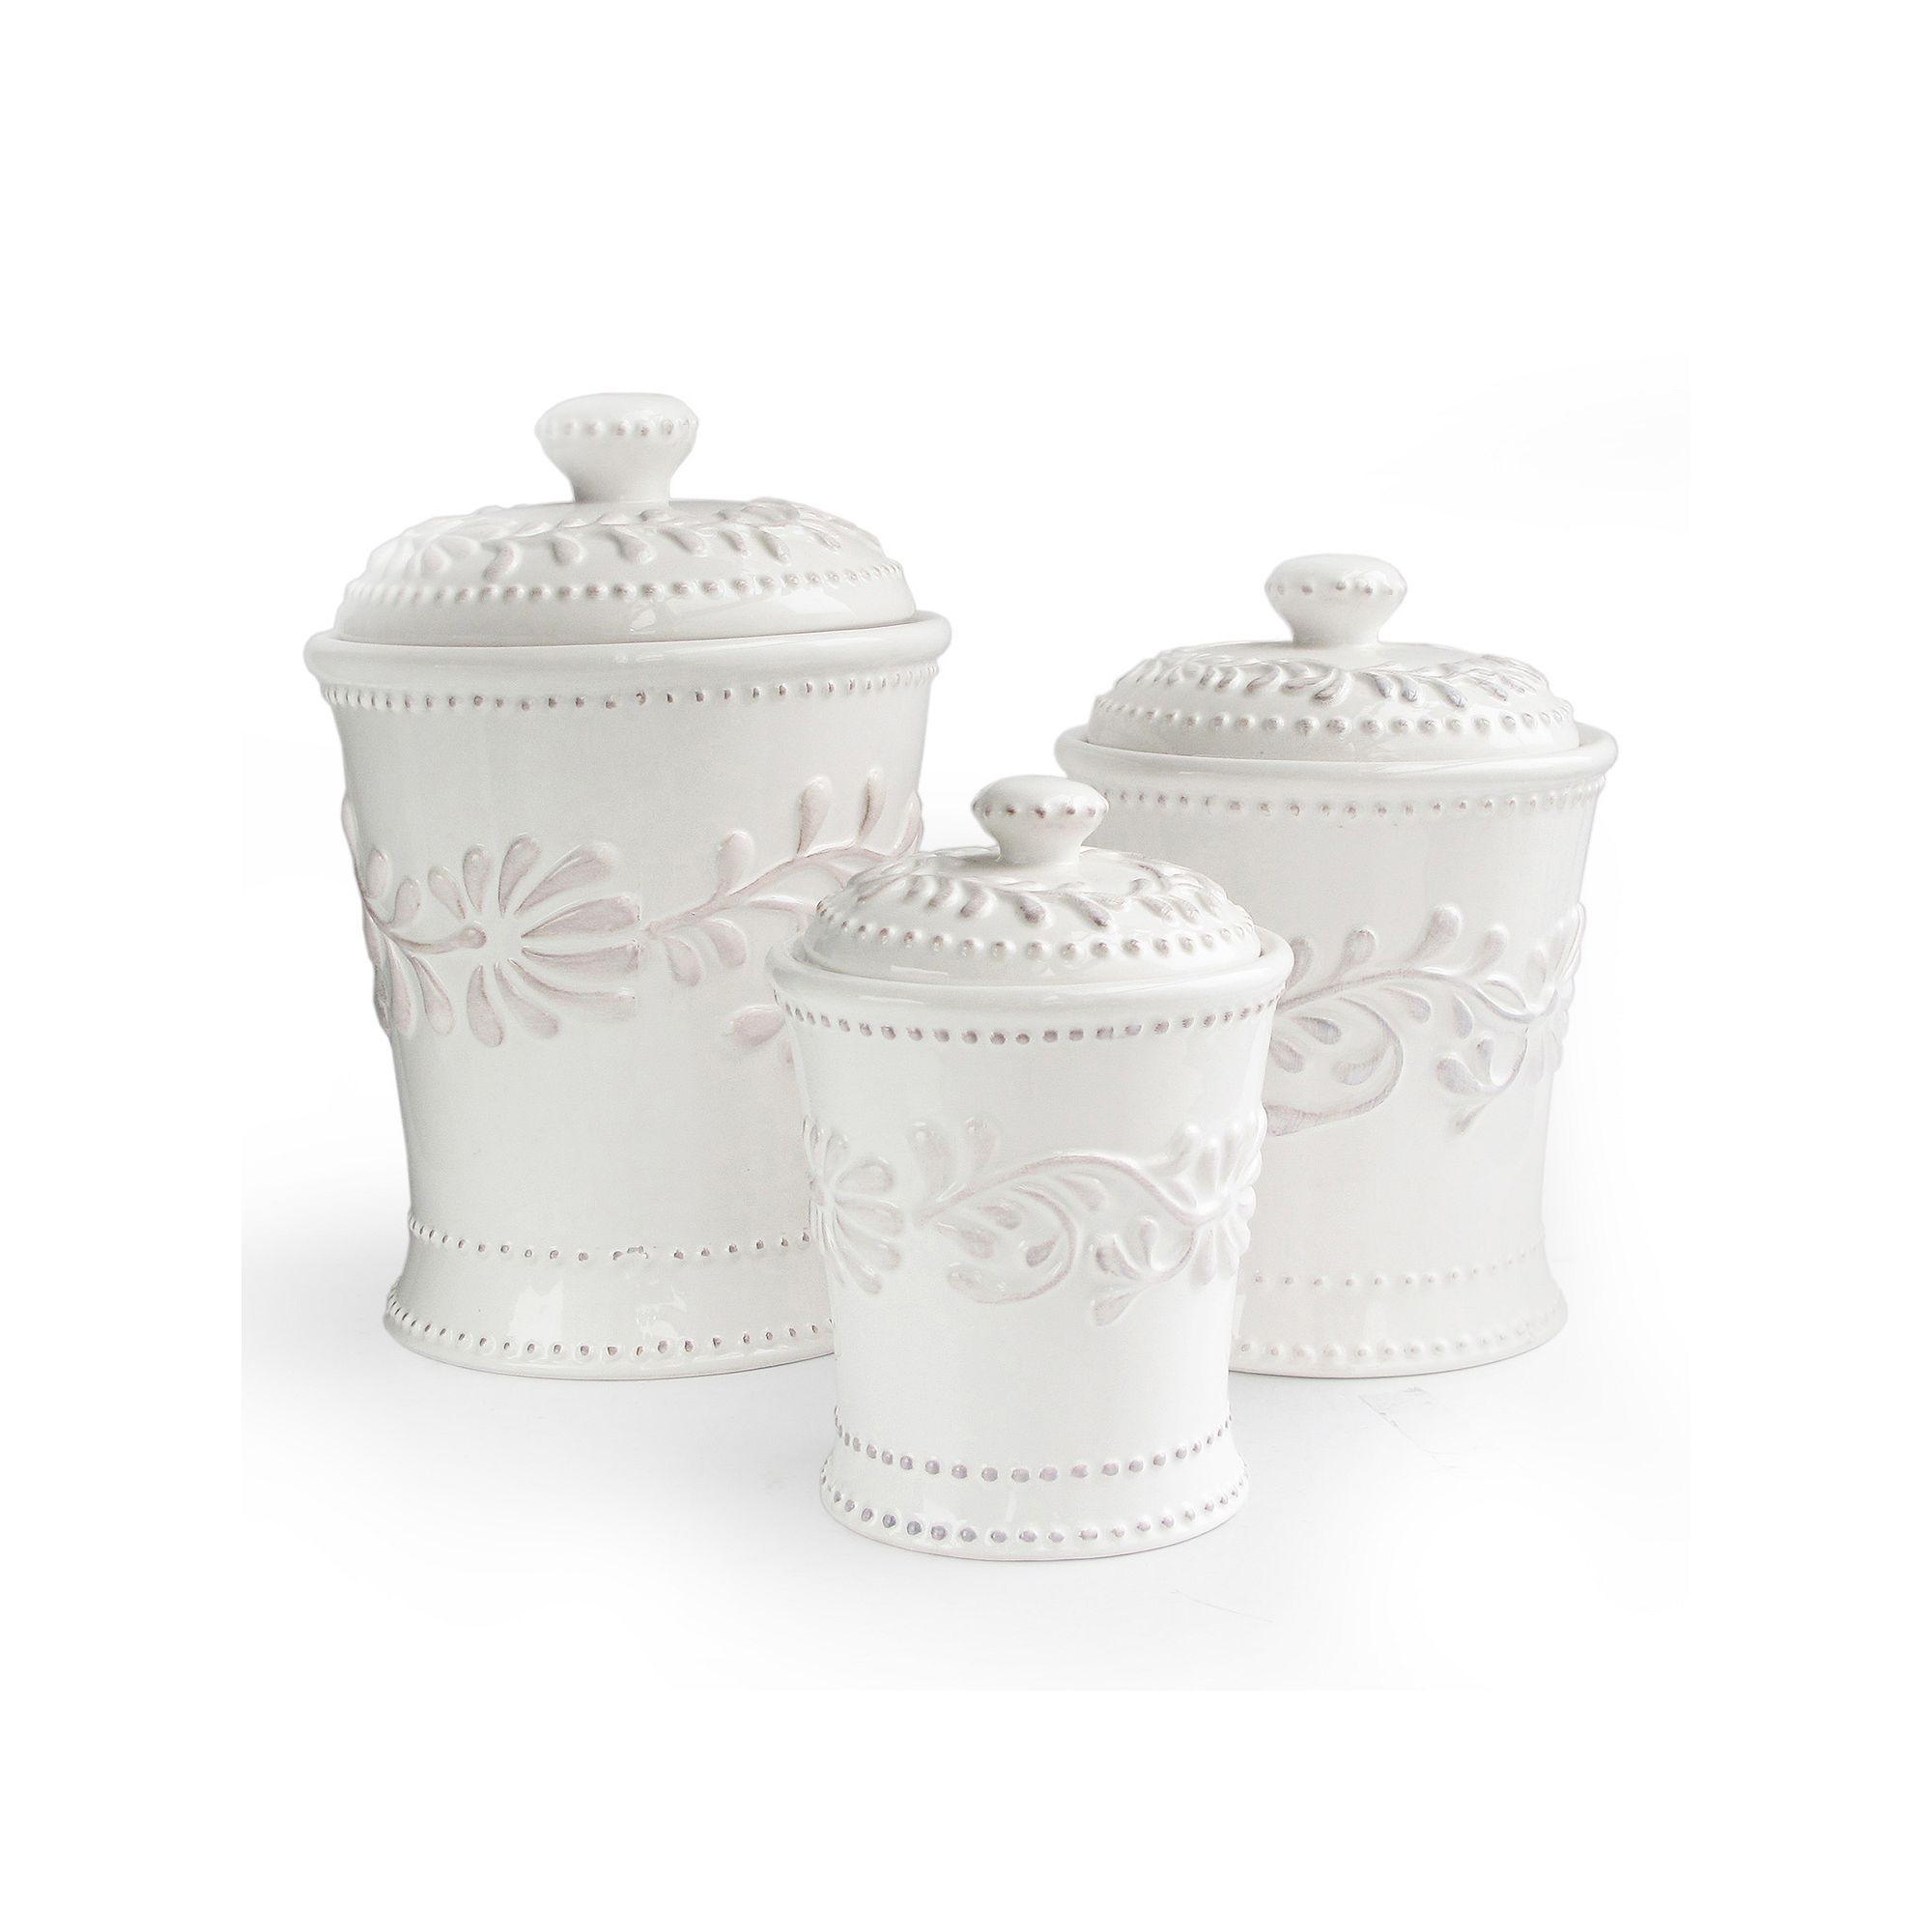 Atelier Bianca Leaf 3-pc. Kitchen Canister Set, White